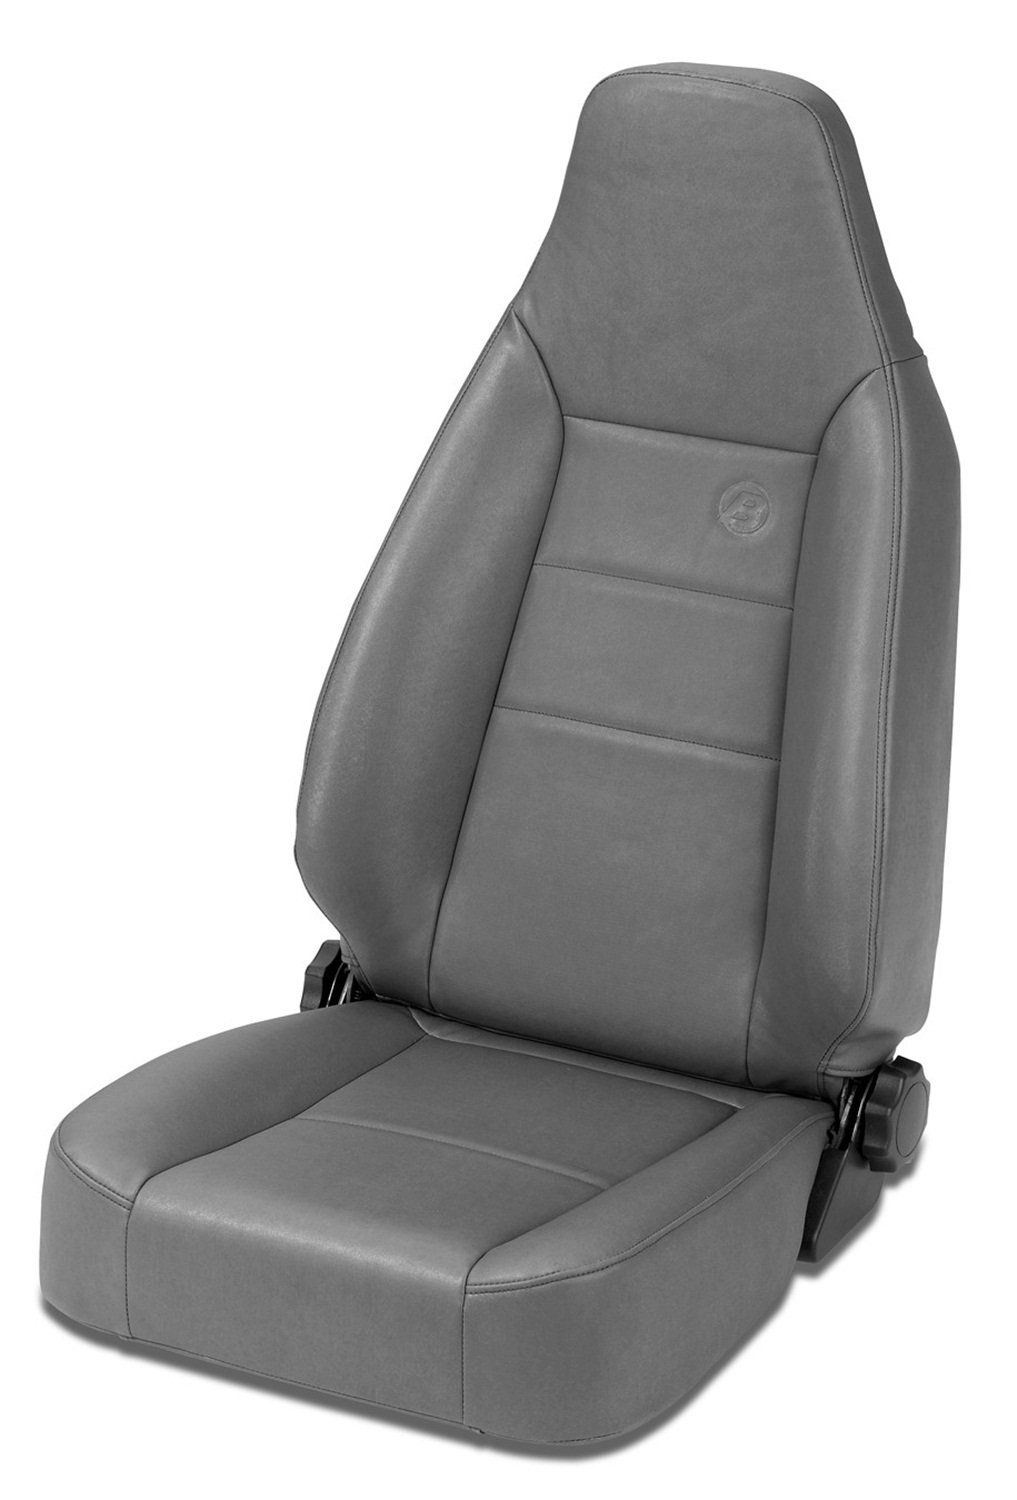 Bestop 39434-01 TrailMax II Sport Black Crush Front High Back All-Vinyl Single Jeep Seat for 1976-2006 Jeep CJ and Wrangler